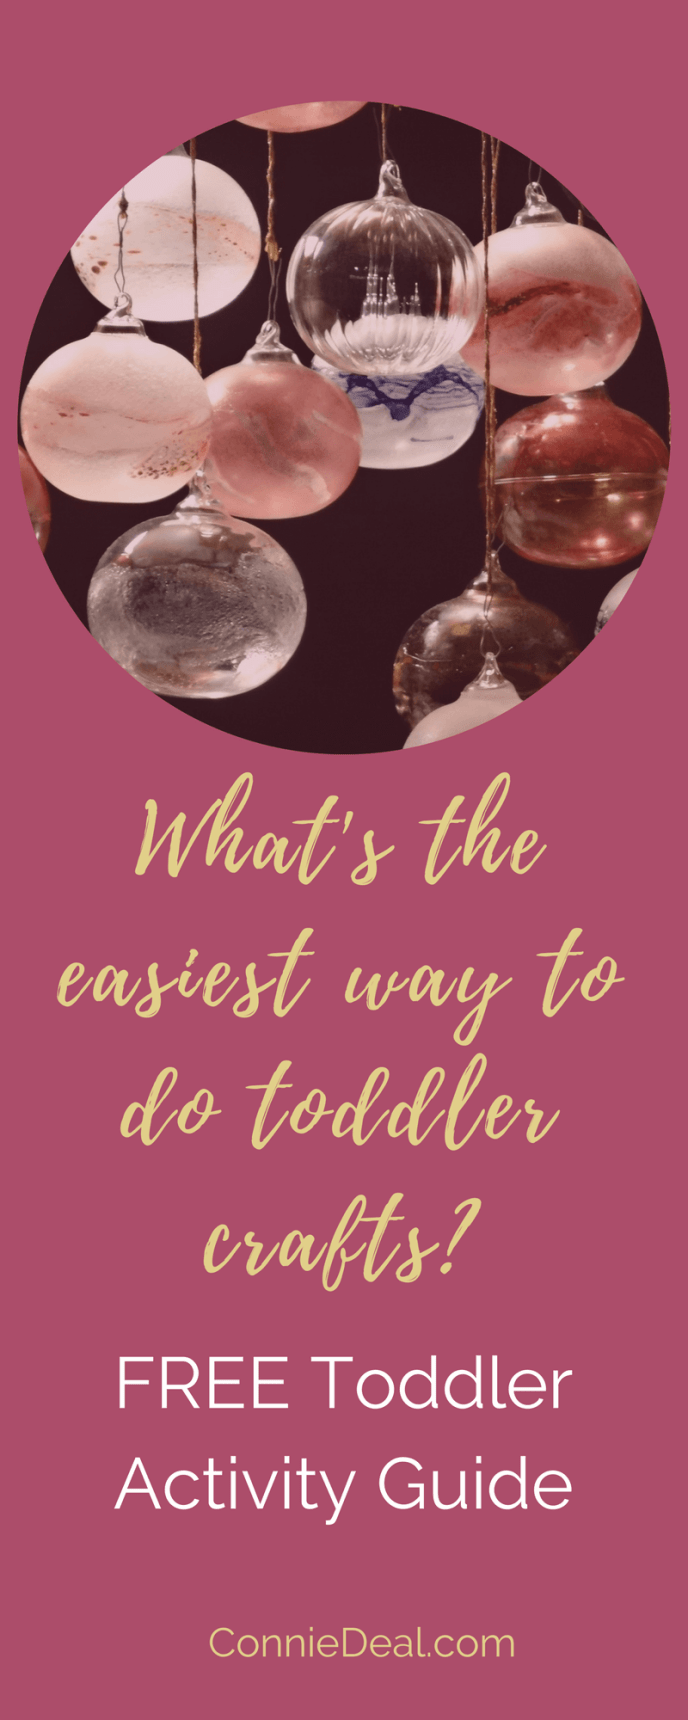 Toddler craft time made easy! You see all the fun things you can do with your toddler this holiday season, but exactly HOW do you go about making those activities easy to do? Find out in this article, which also includes a free Toddler Activity Guide. #toddleractivity #holidayactivity #toddlermom